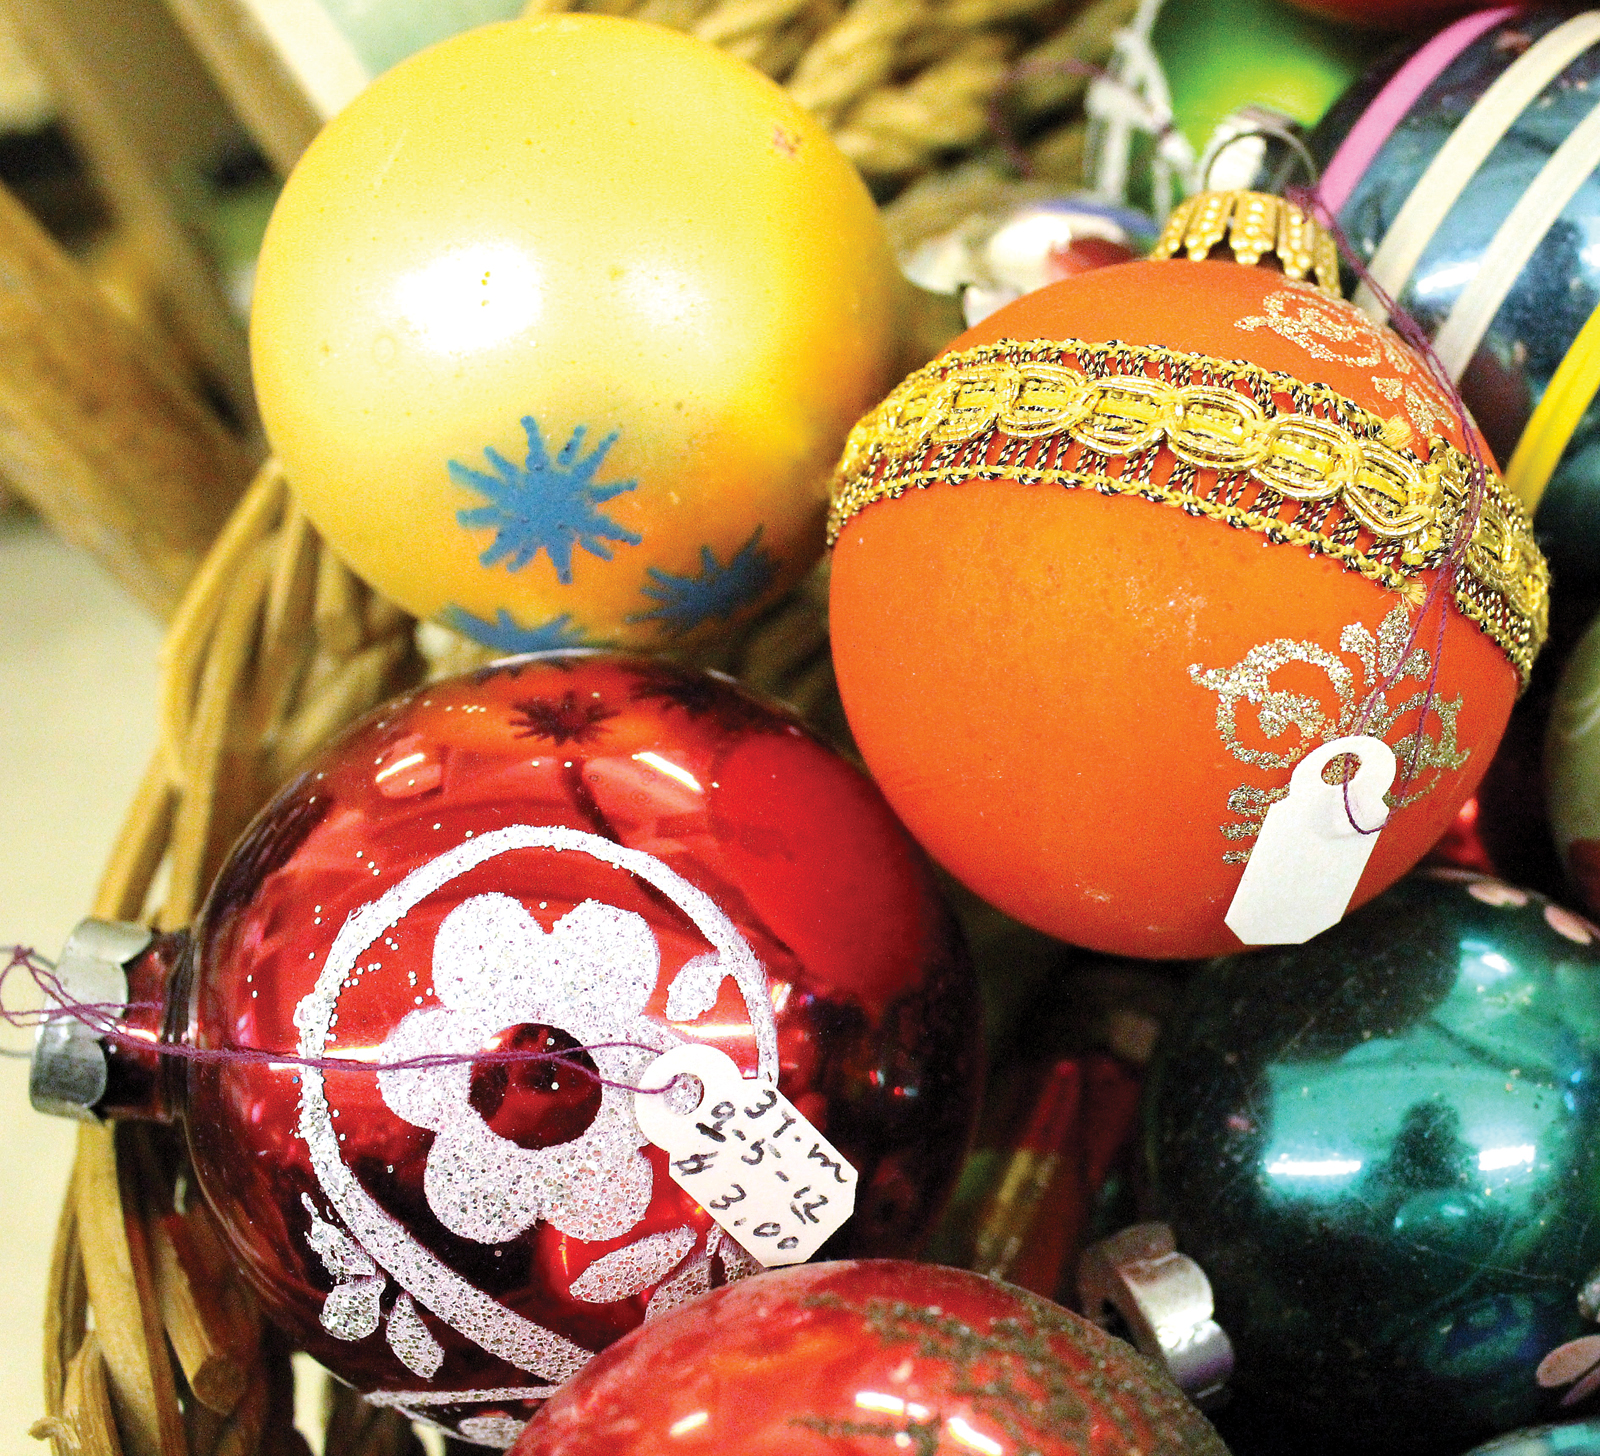 Old Fashioned Christmas Bulbs And Decorations News Sports Jobs